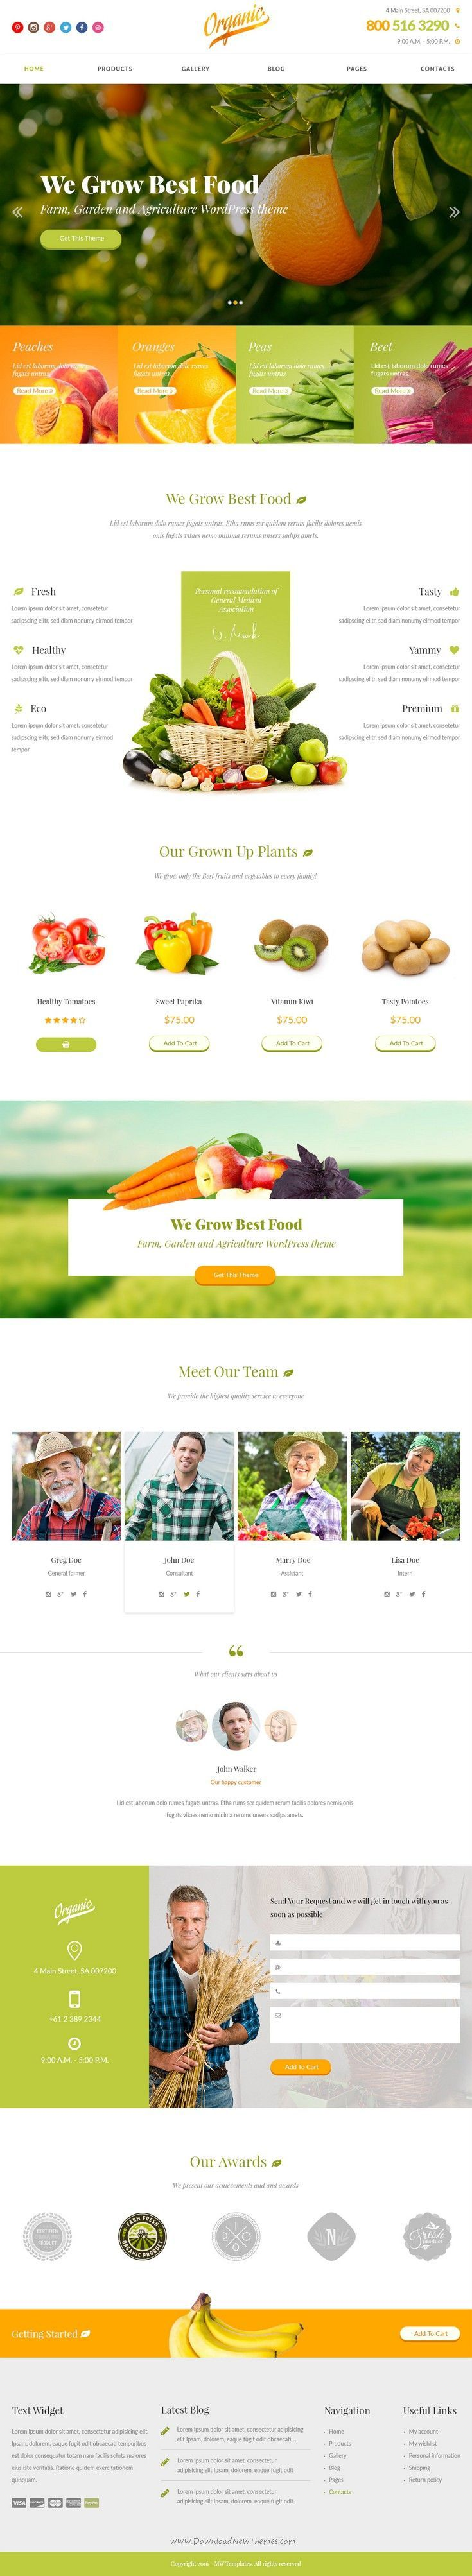 D health food store in l a - Organic Farm Garden And Agriculture Psd Template Organic Food Storesorganic